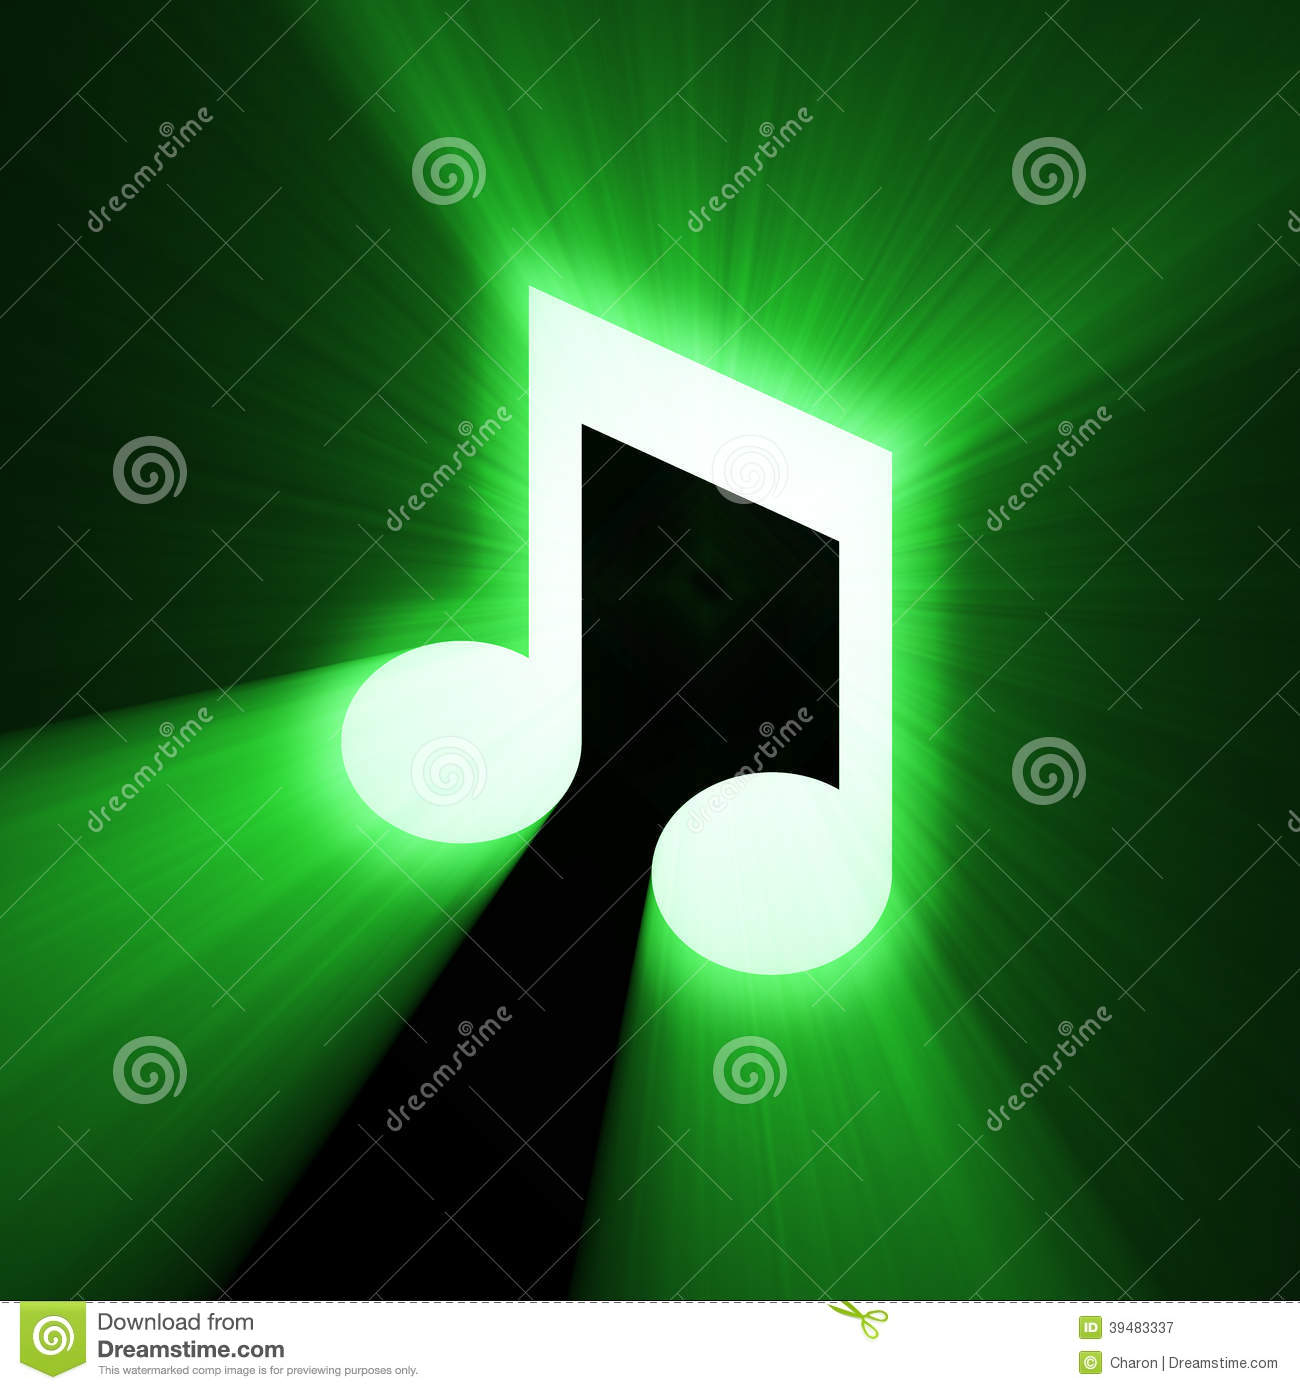 Music note sign halo light flare stock illustration illustration music note sign halo light flare biocorpaavc Image collections